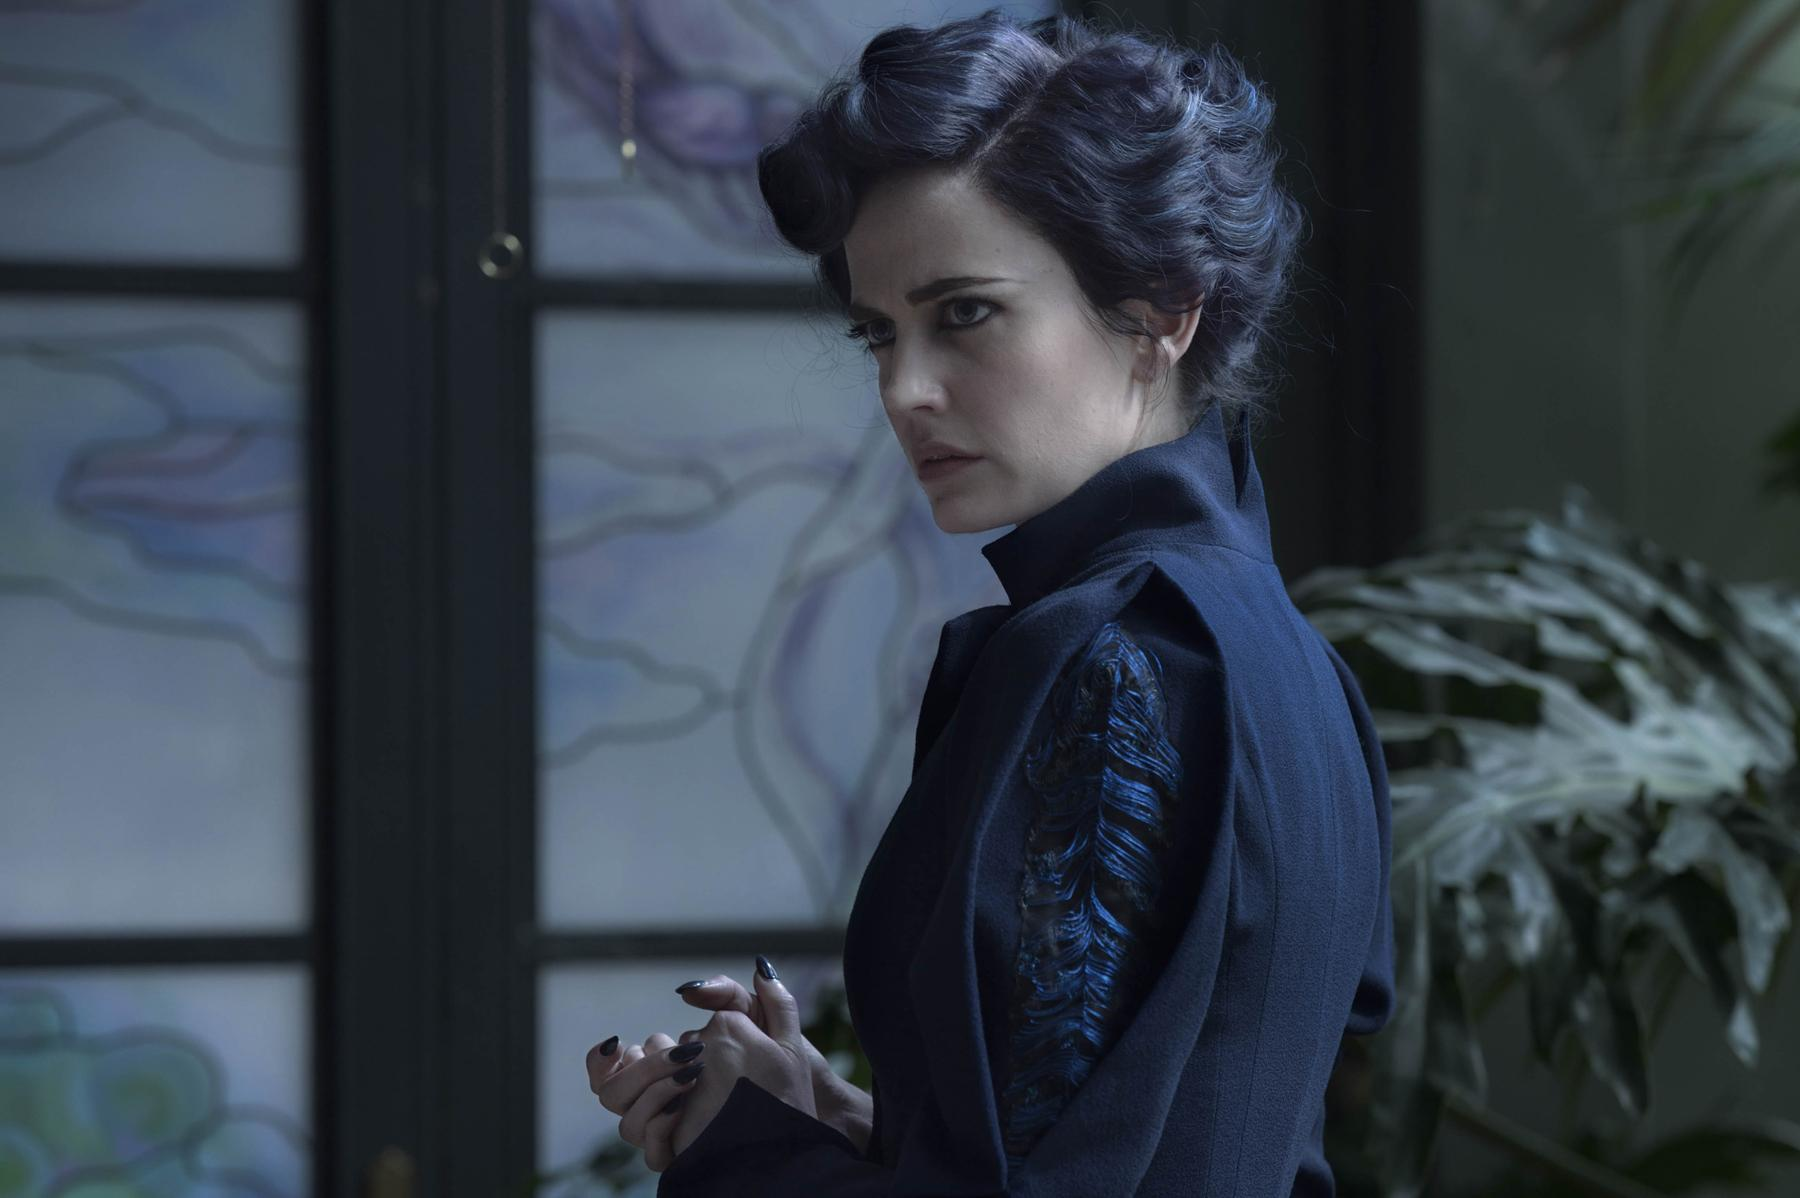 Miss Peregrine continua na frente do box office mundial